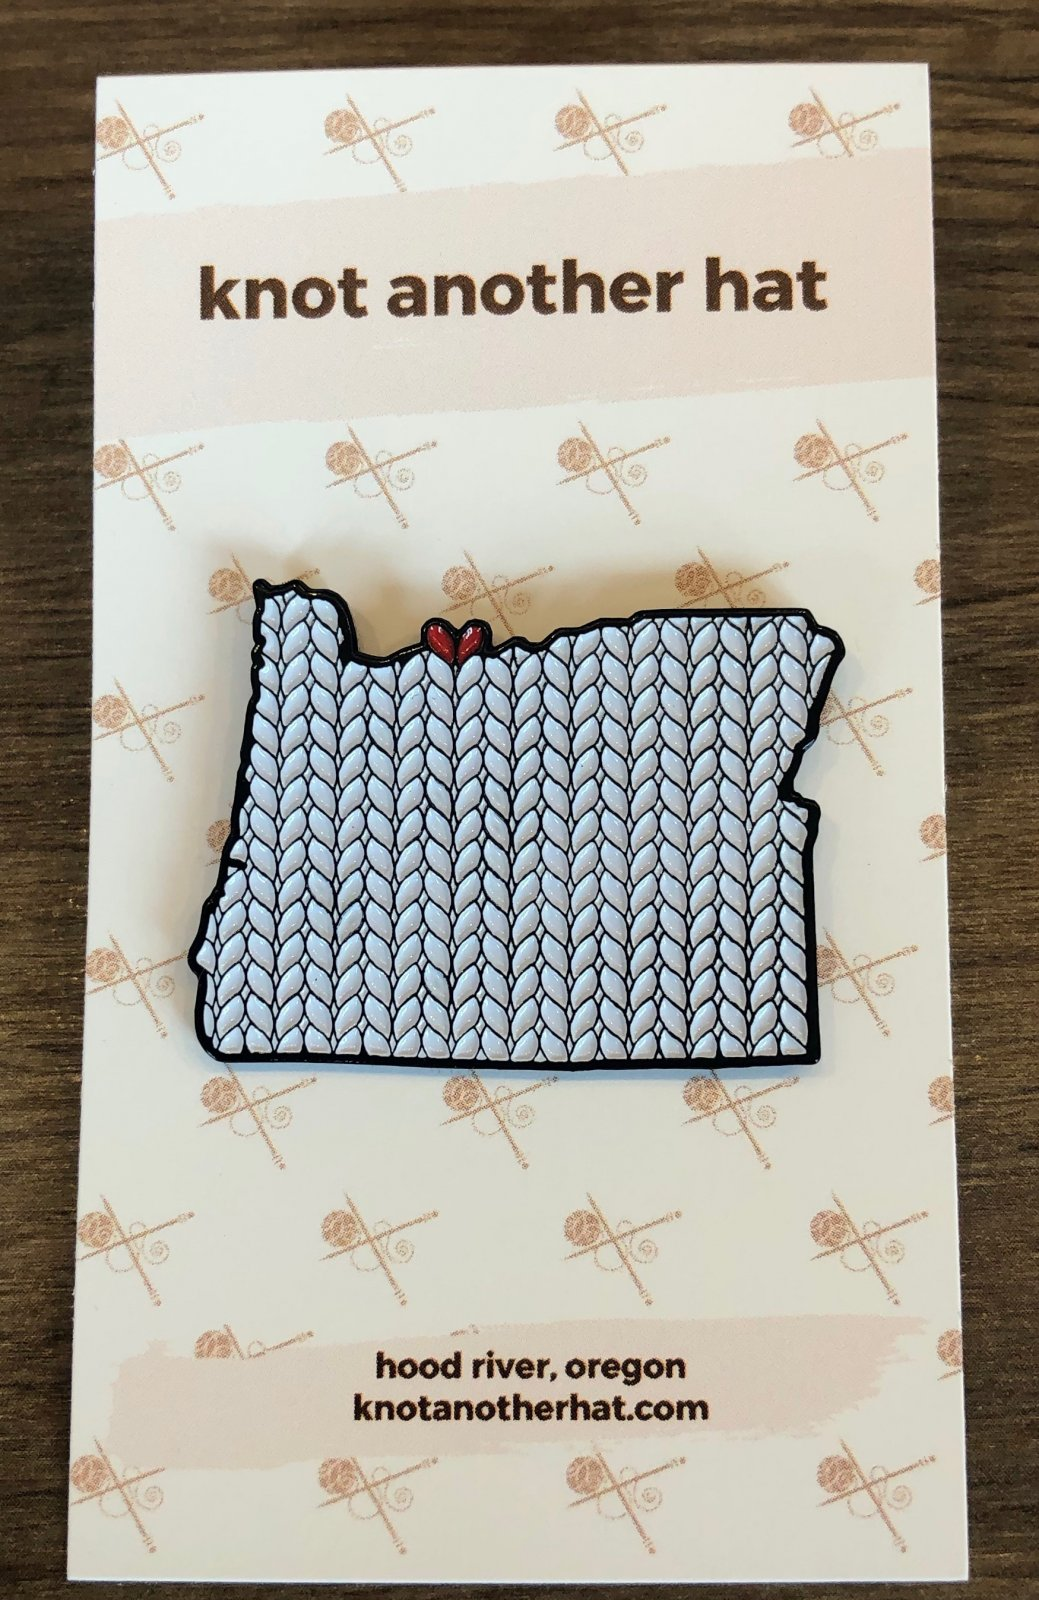 knot another hat enamel pin